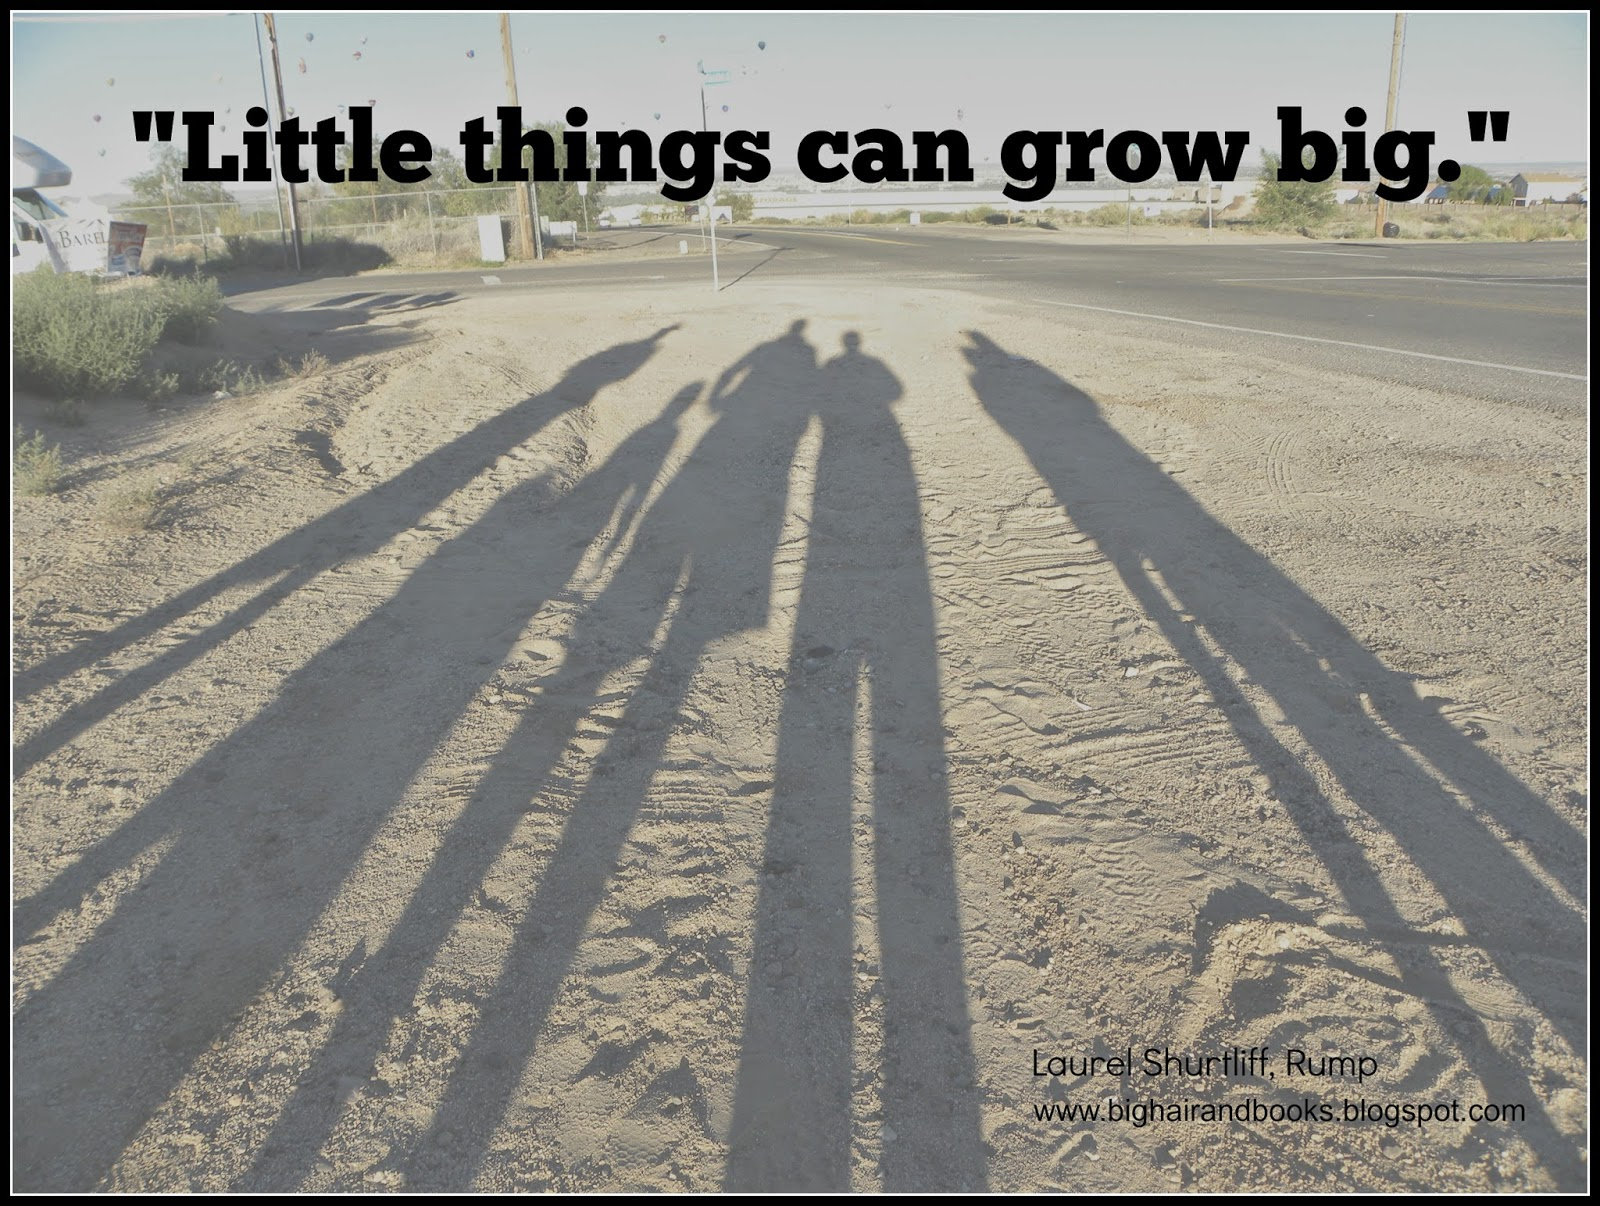 Big Hair and Books:  Quote from Liesl Shurtliff, Rump Little Things Can Grow Big